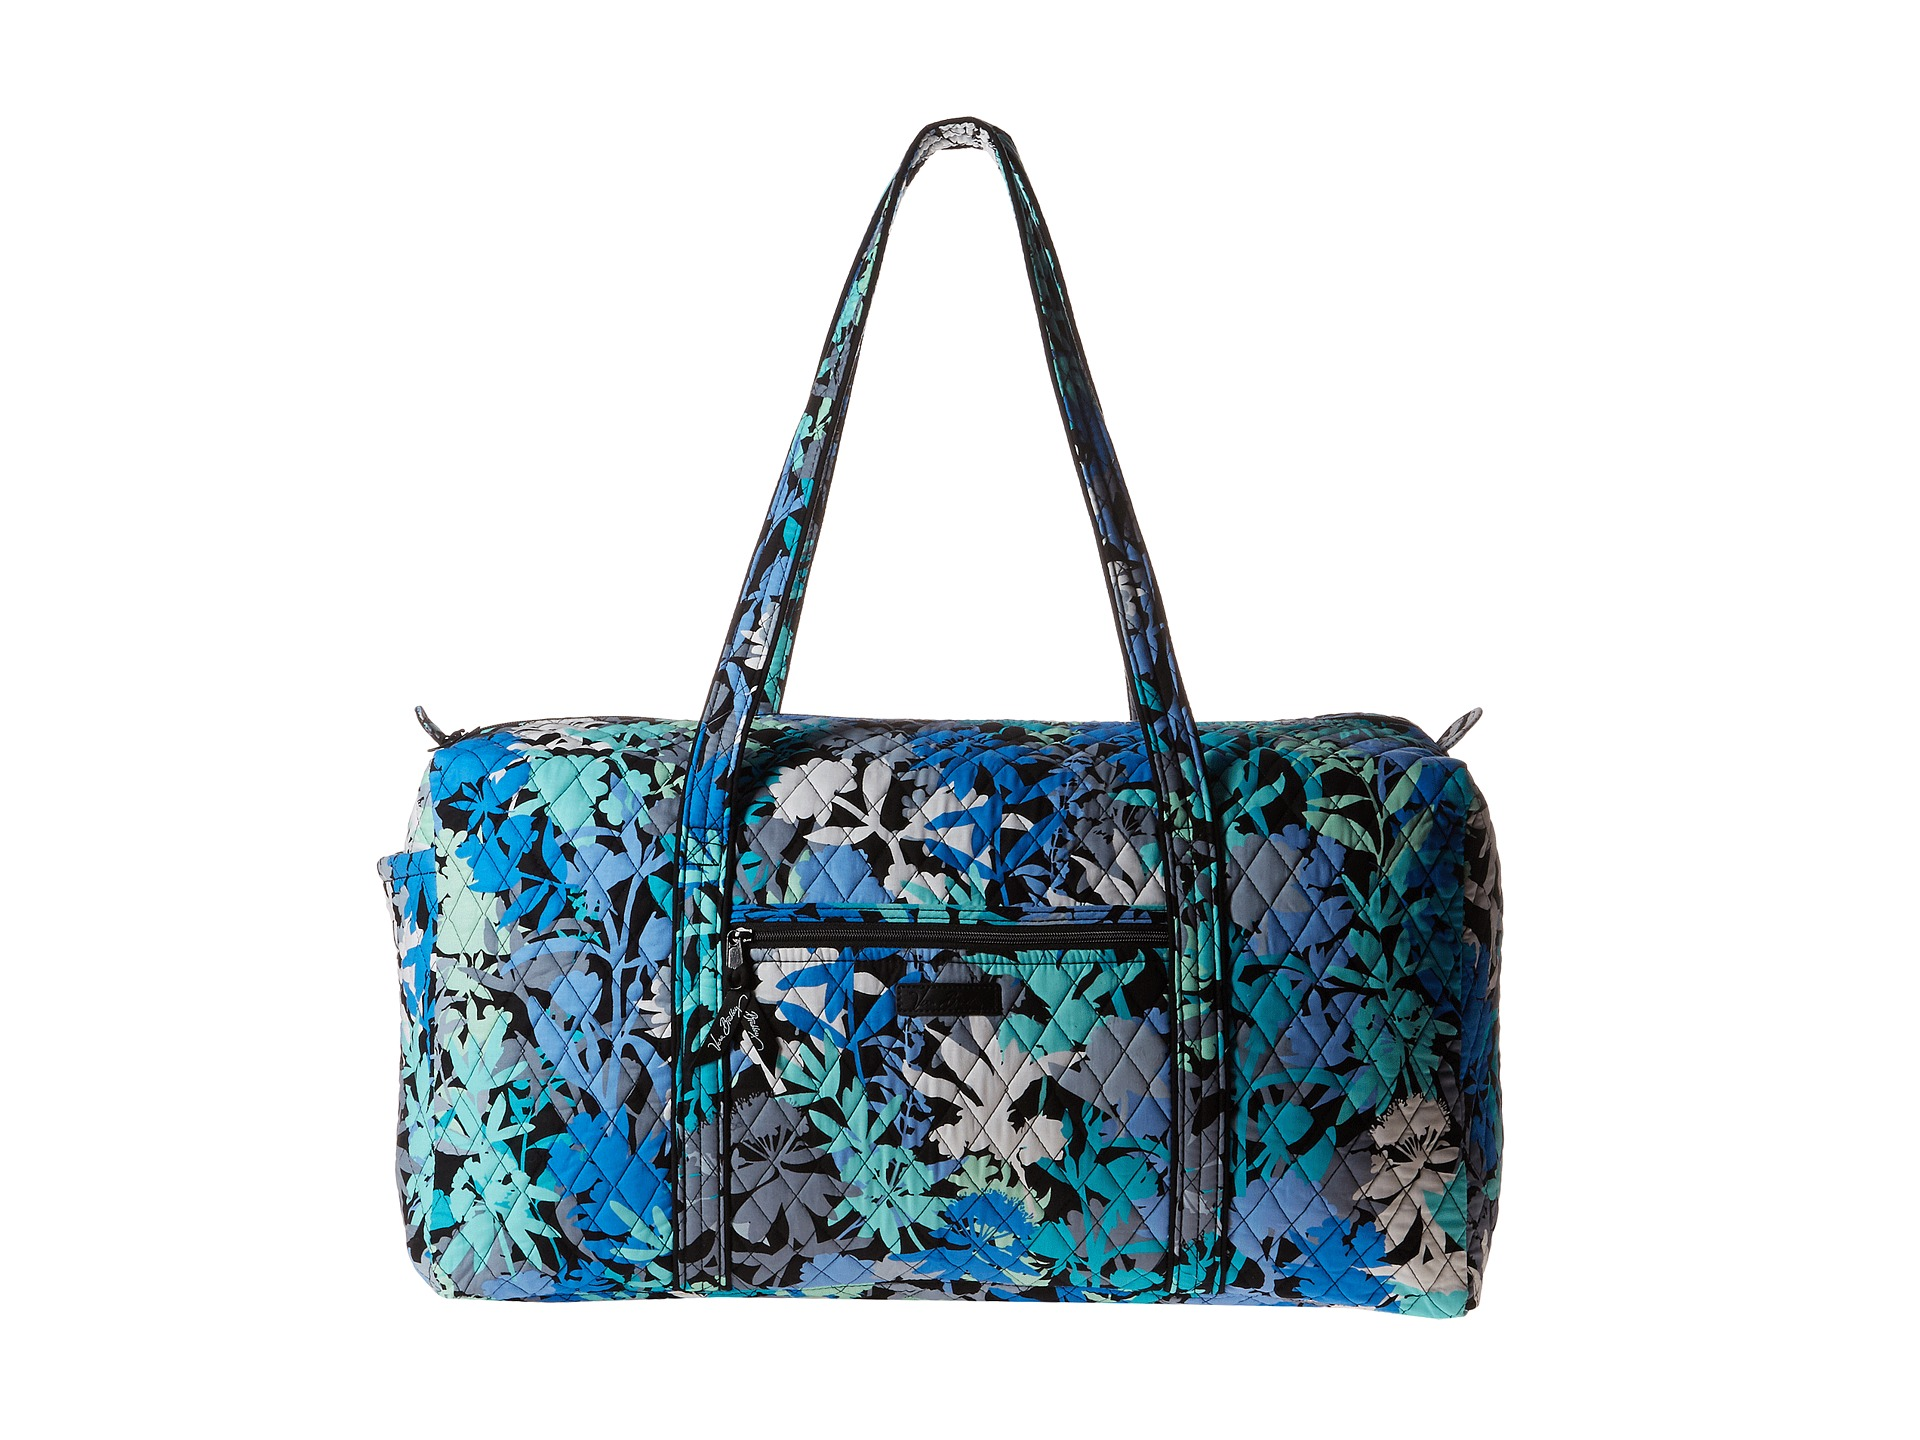 Vera Bradley Luggage Large Duffel 2.0 Camo Floral - Zappos.com Free Shipping BOTH Ways